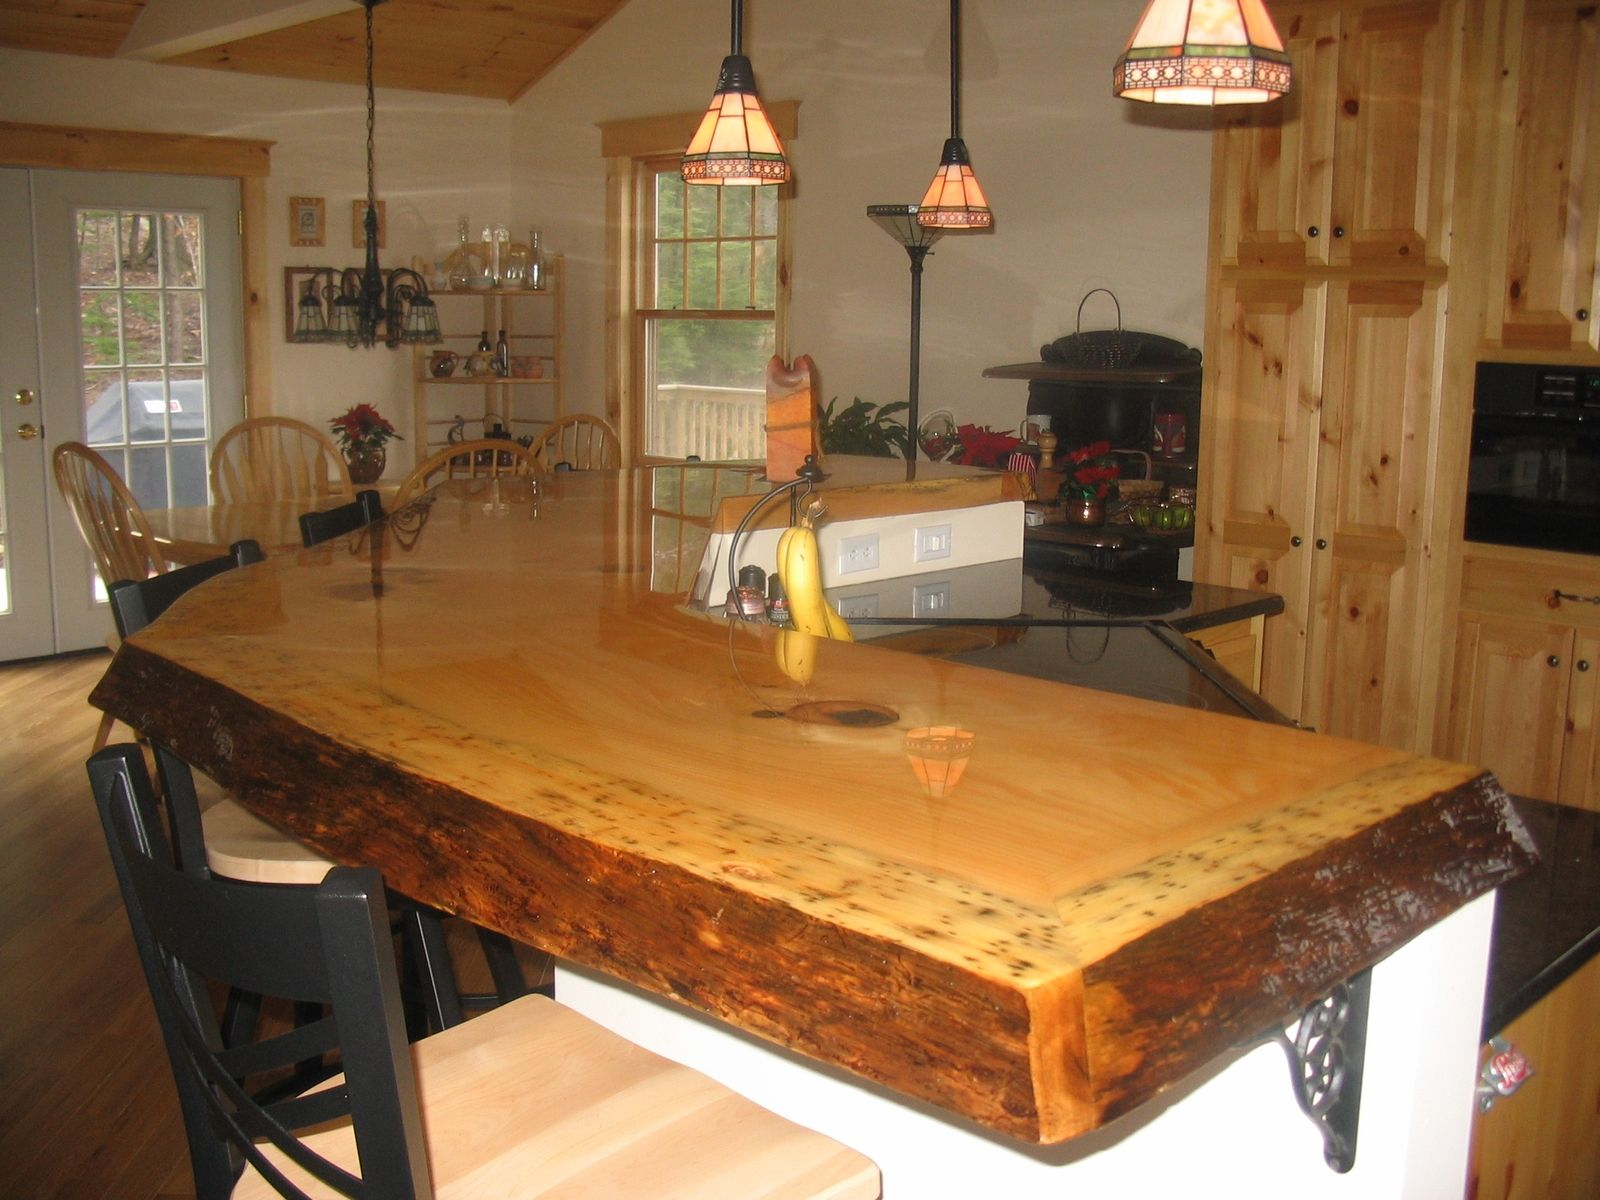 Custom made rustic bar top by timeless woodworking - Bar tops ideas ...